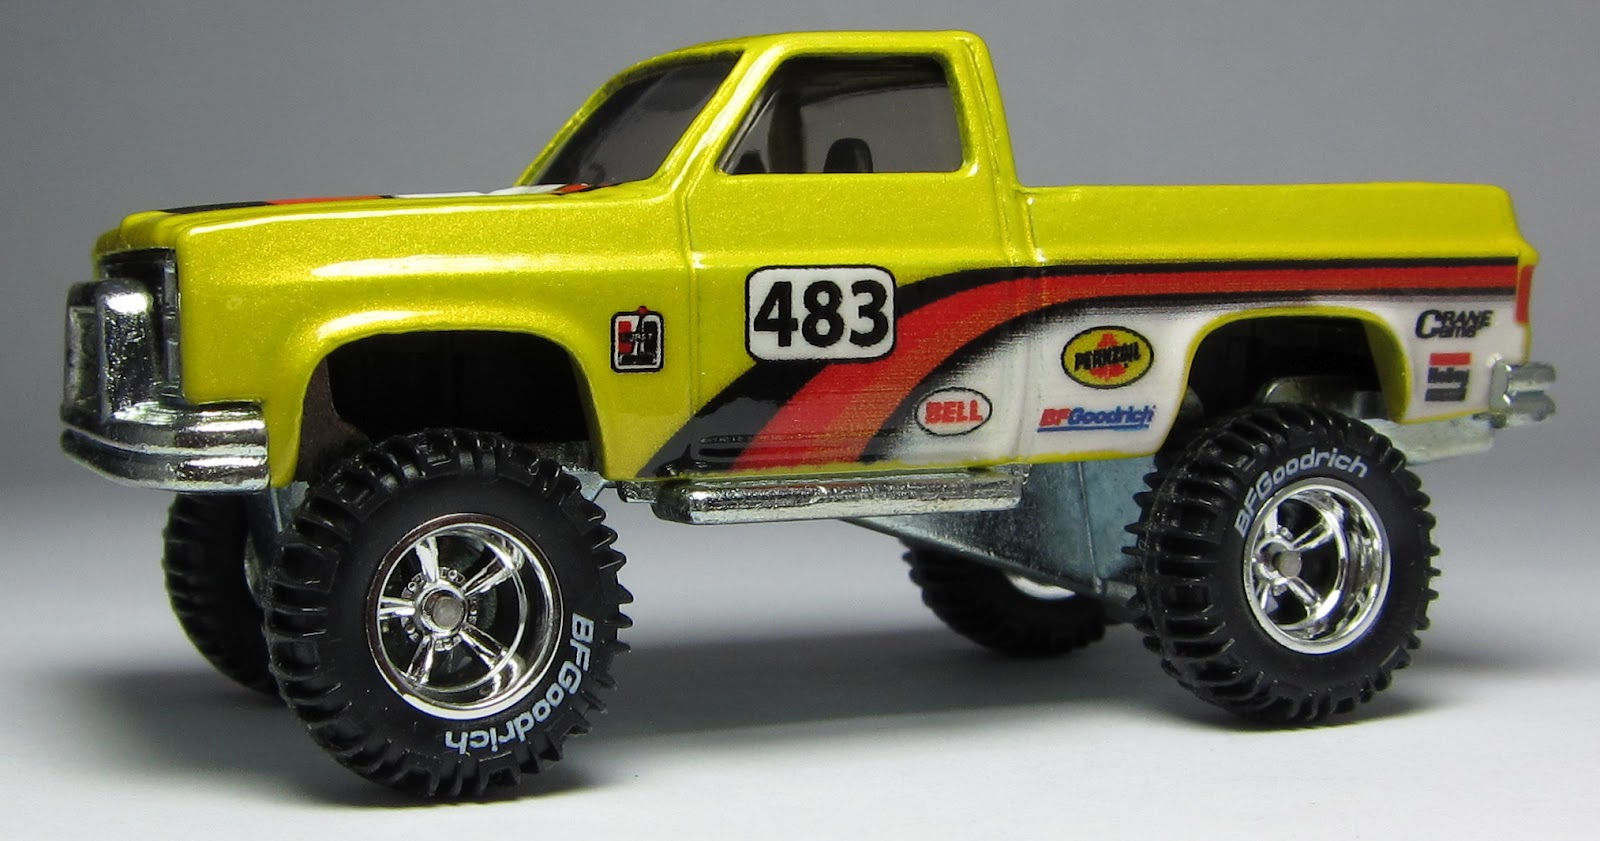 hot wheels rare off road racing now available at wheel collectors - Rare Hot Wheels Cars 2013